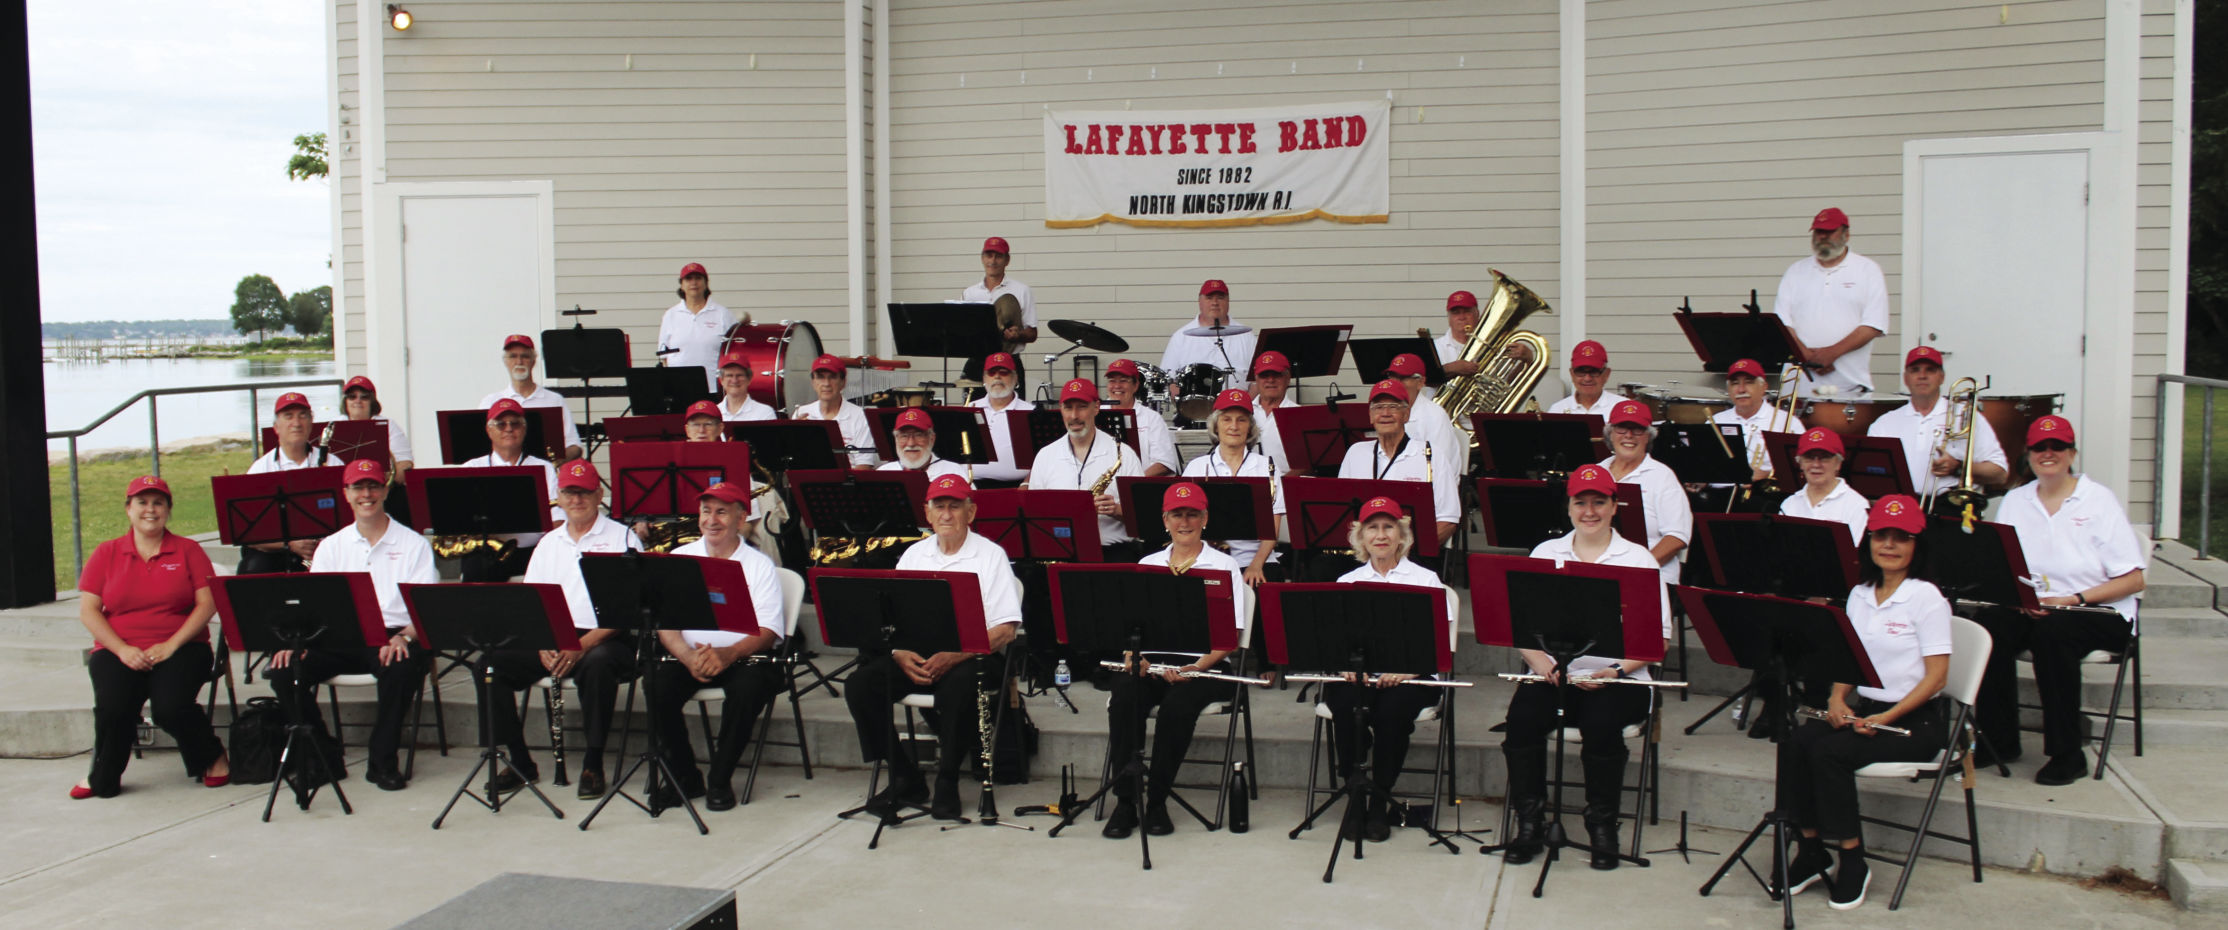 Lafayette Band readies for annual summer concert series